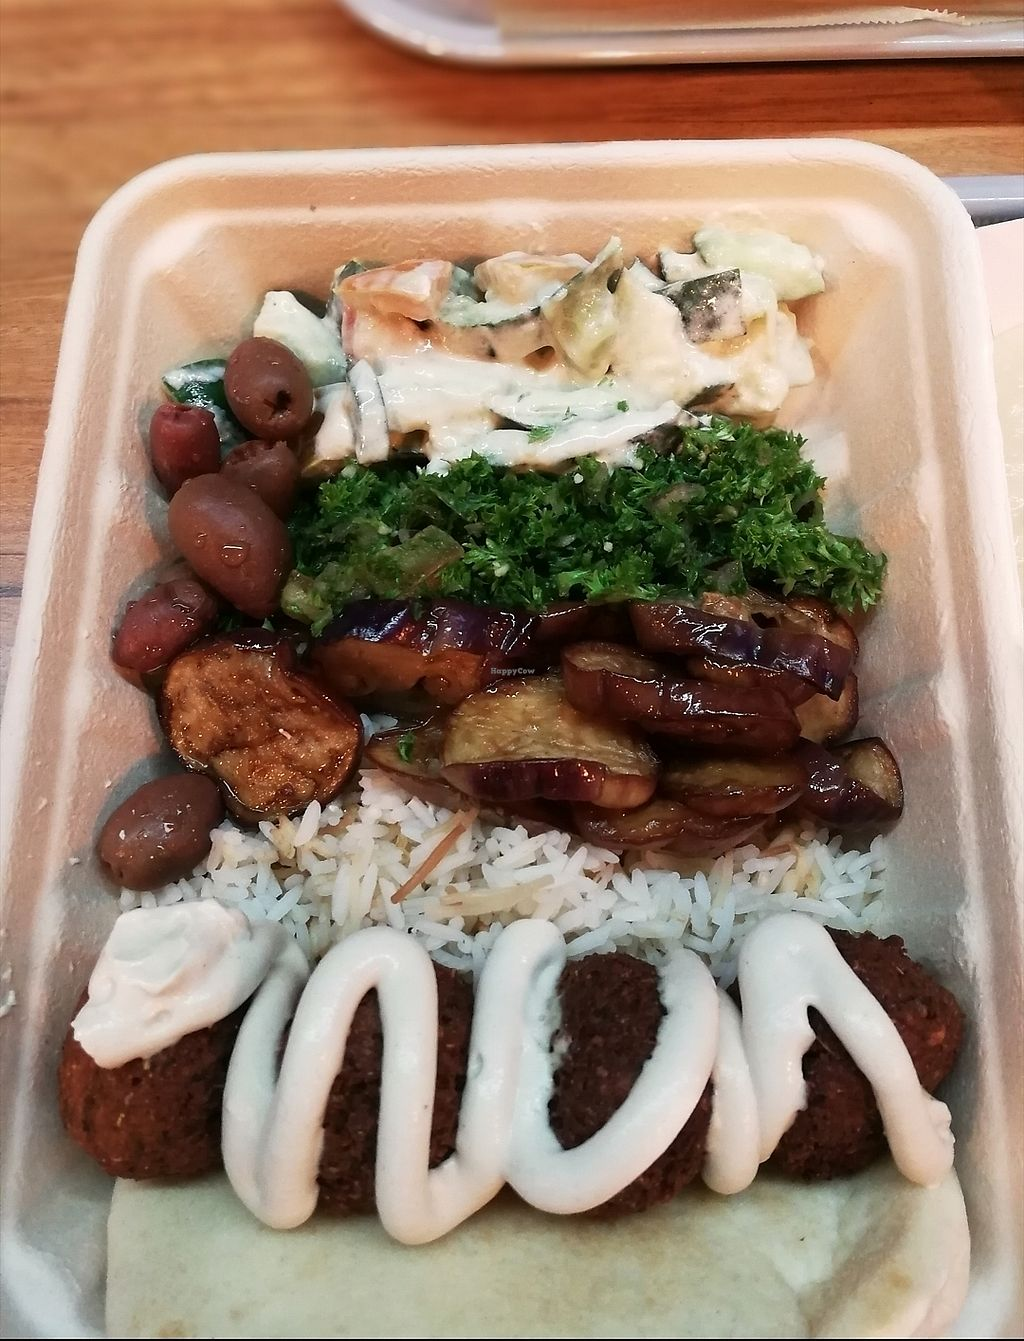 """Photo of Falafill  by <a href=""""/members/profile/dpardog"""">dpardog</a> <br/>falafel platter  <br/> December 10, 2017  - <a href='/contact/abuse/image/106965/334211'>Report</a>"""